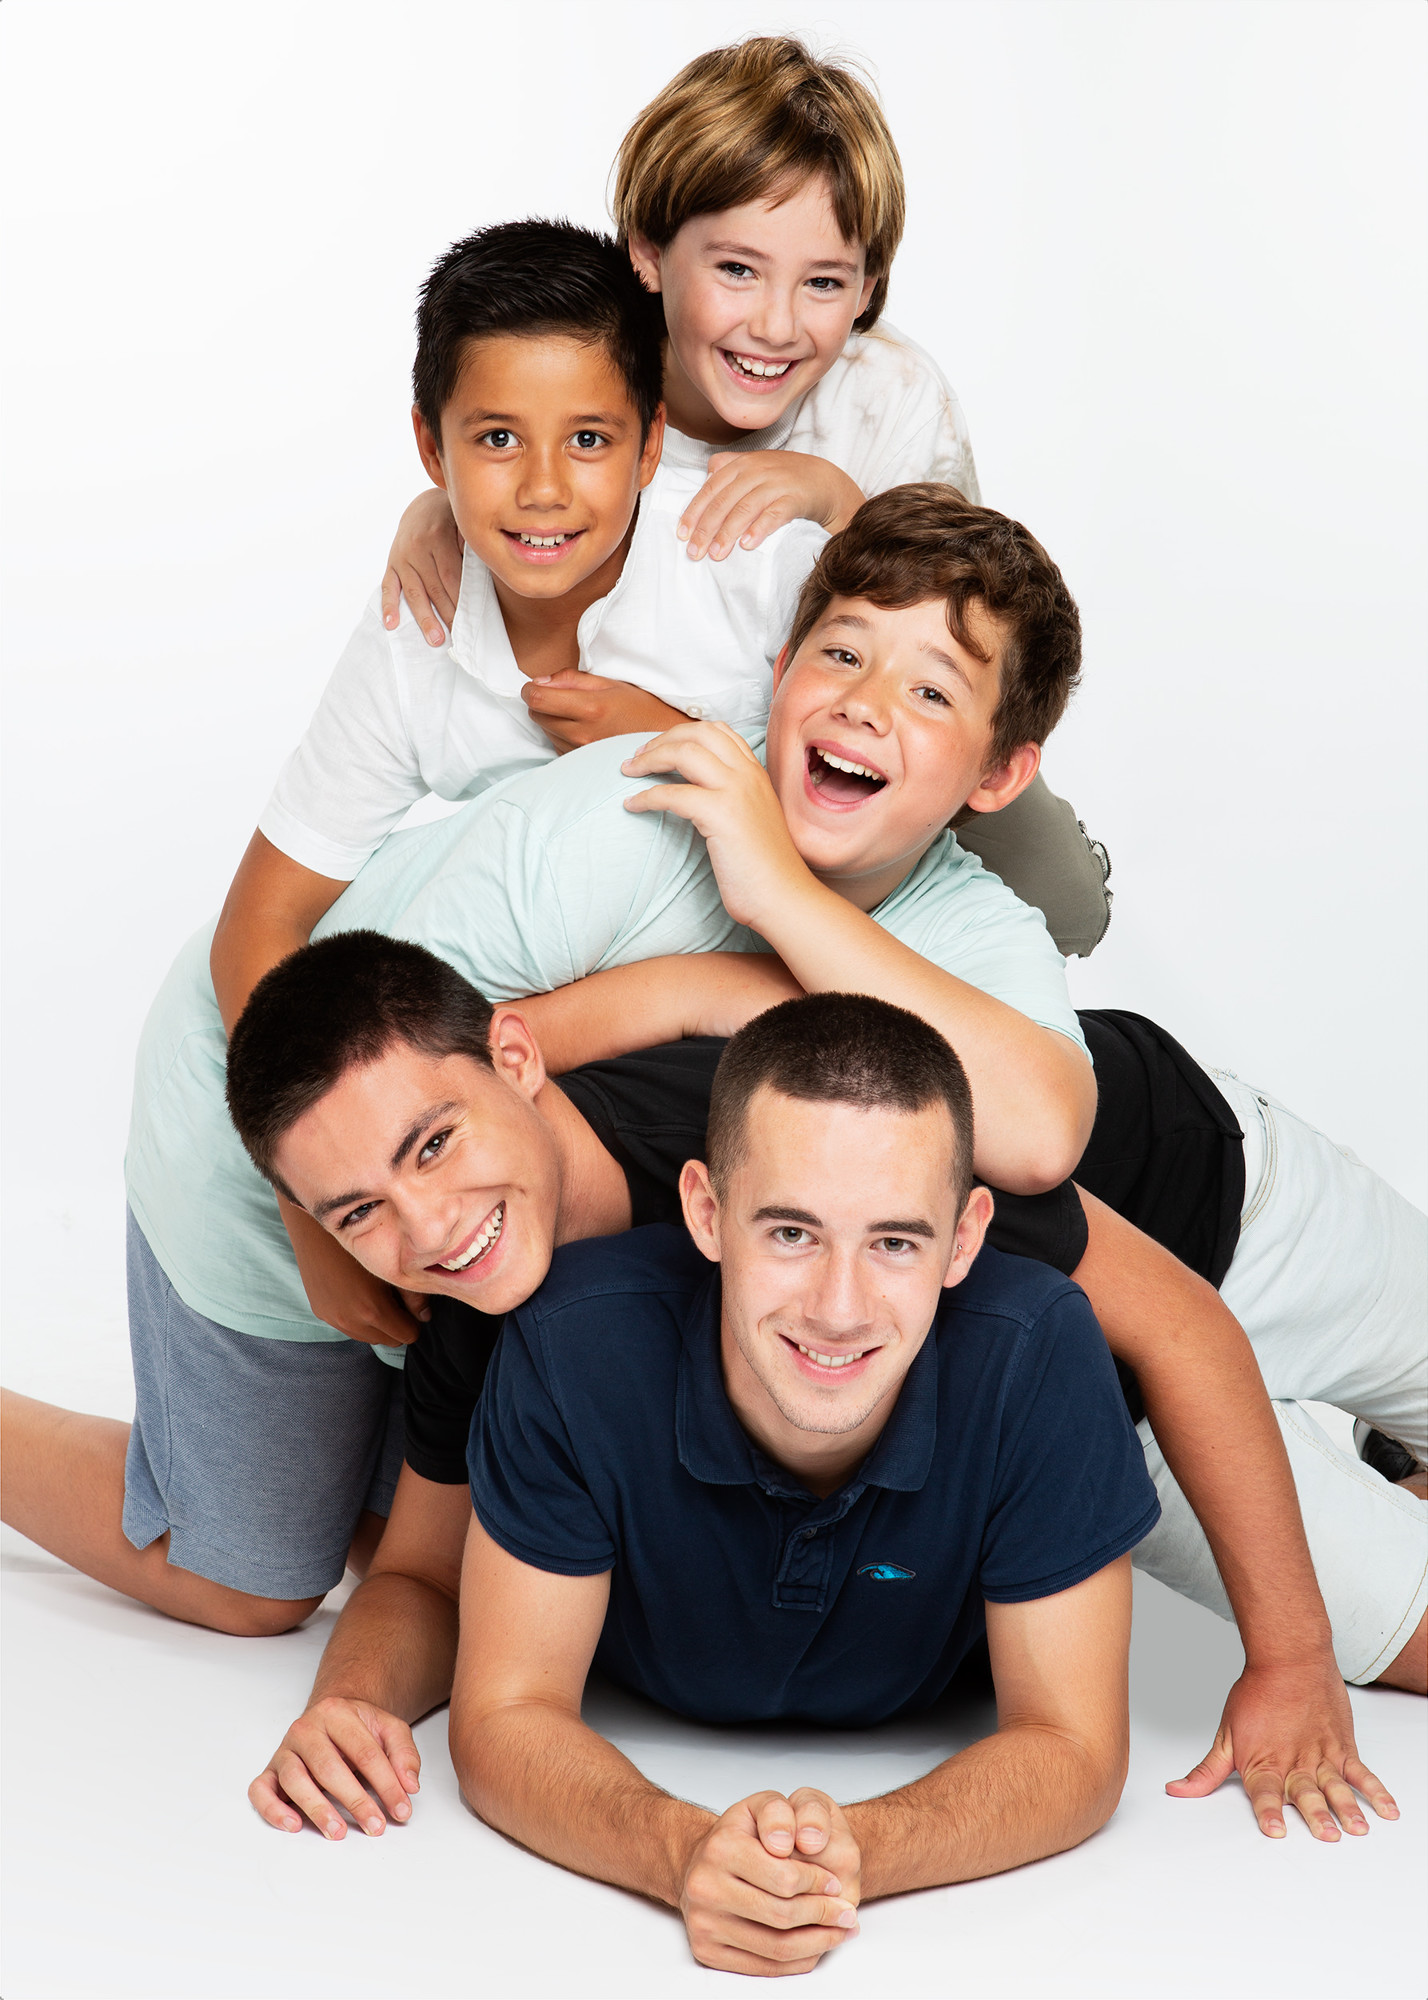 Family pictures with children in studio.